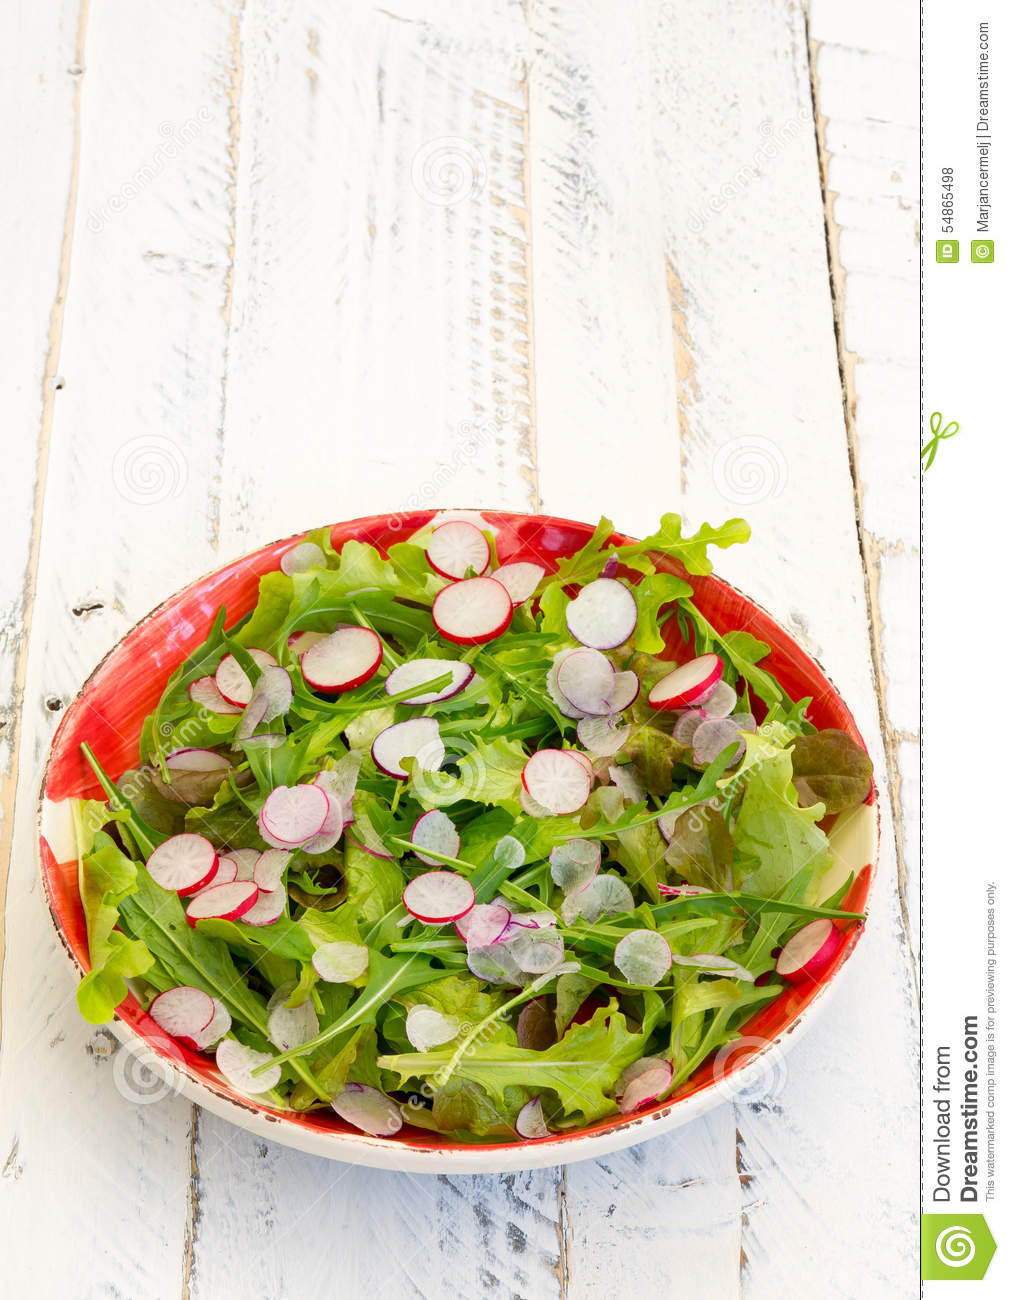 Lettuce Rocket Leaves With Chopped Radishes Salad on Gingham Plate